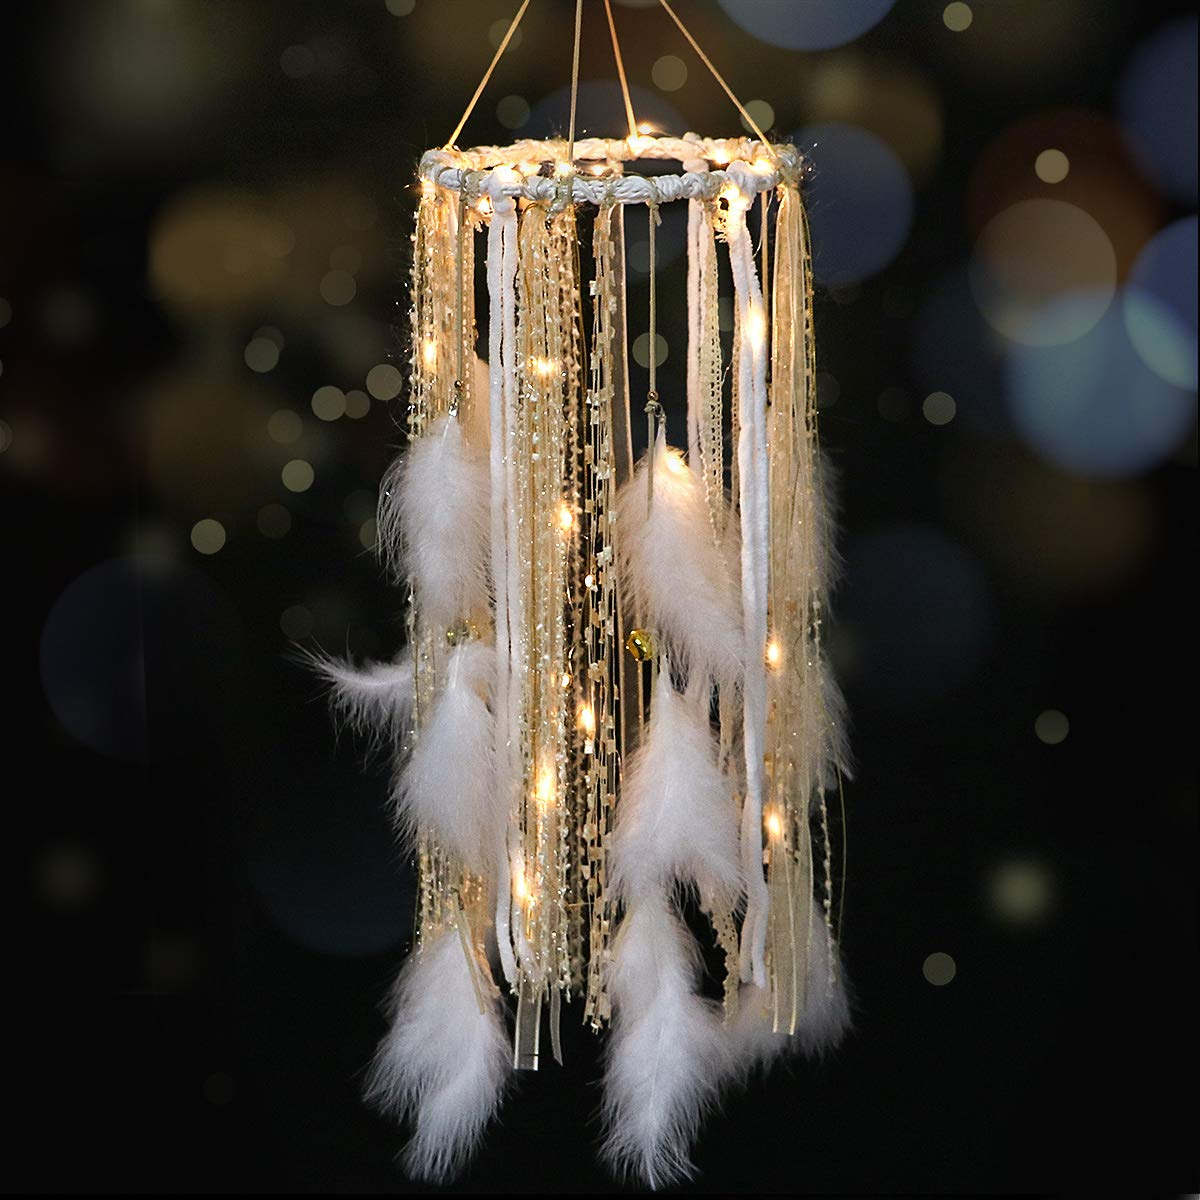 Dream Catcher Mobile Large Light Up Dream Catchers with Golden Shining Lace& Bells LED Fairy Lights Battery Powered Hanging Ornaments- 7.9Wx 22L Inches Feathers Wedding Boho Decorations Nursery Decor by Dremisland